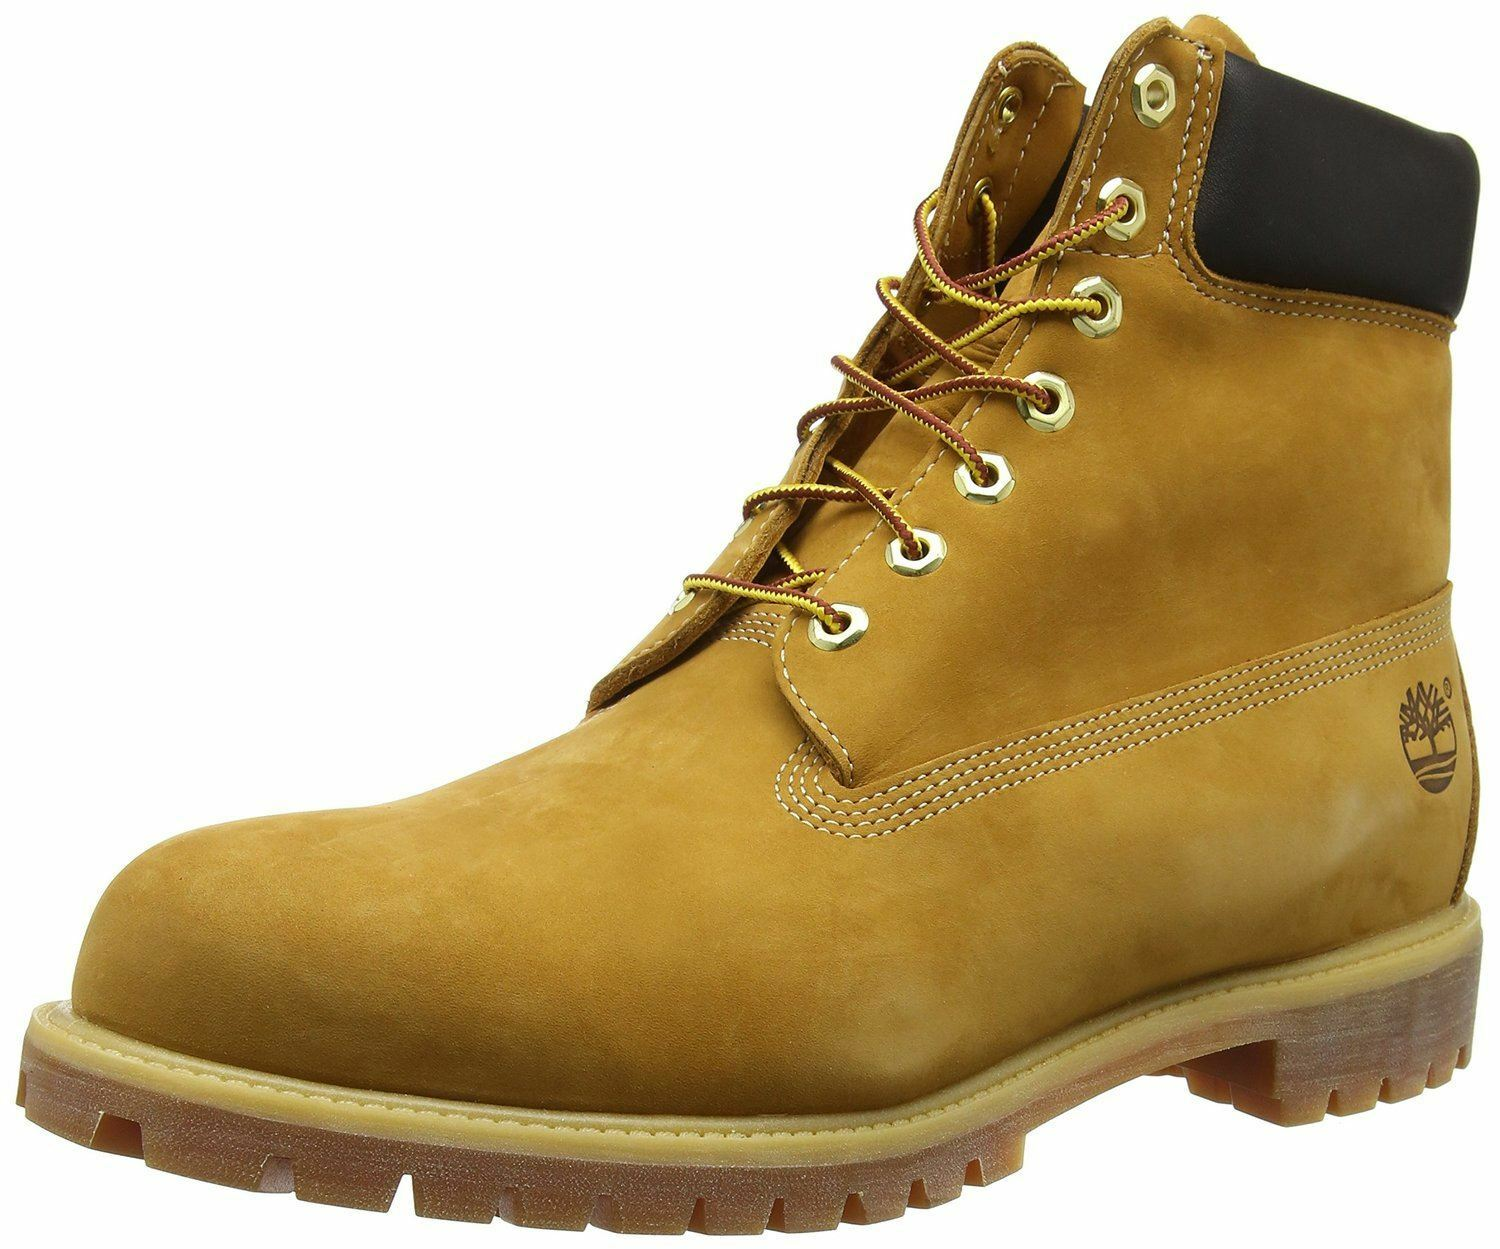 Winter New MensGents Wheat Nubuck Timberland Premium Leather Fashion Boots  Wheat Nubuck  UK